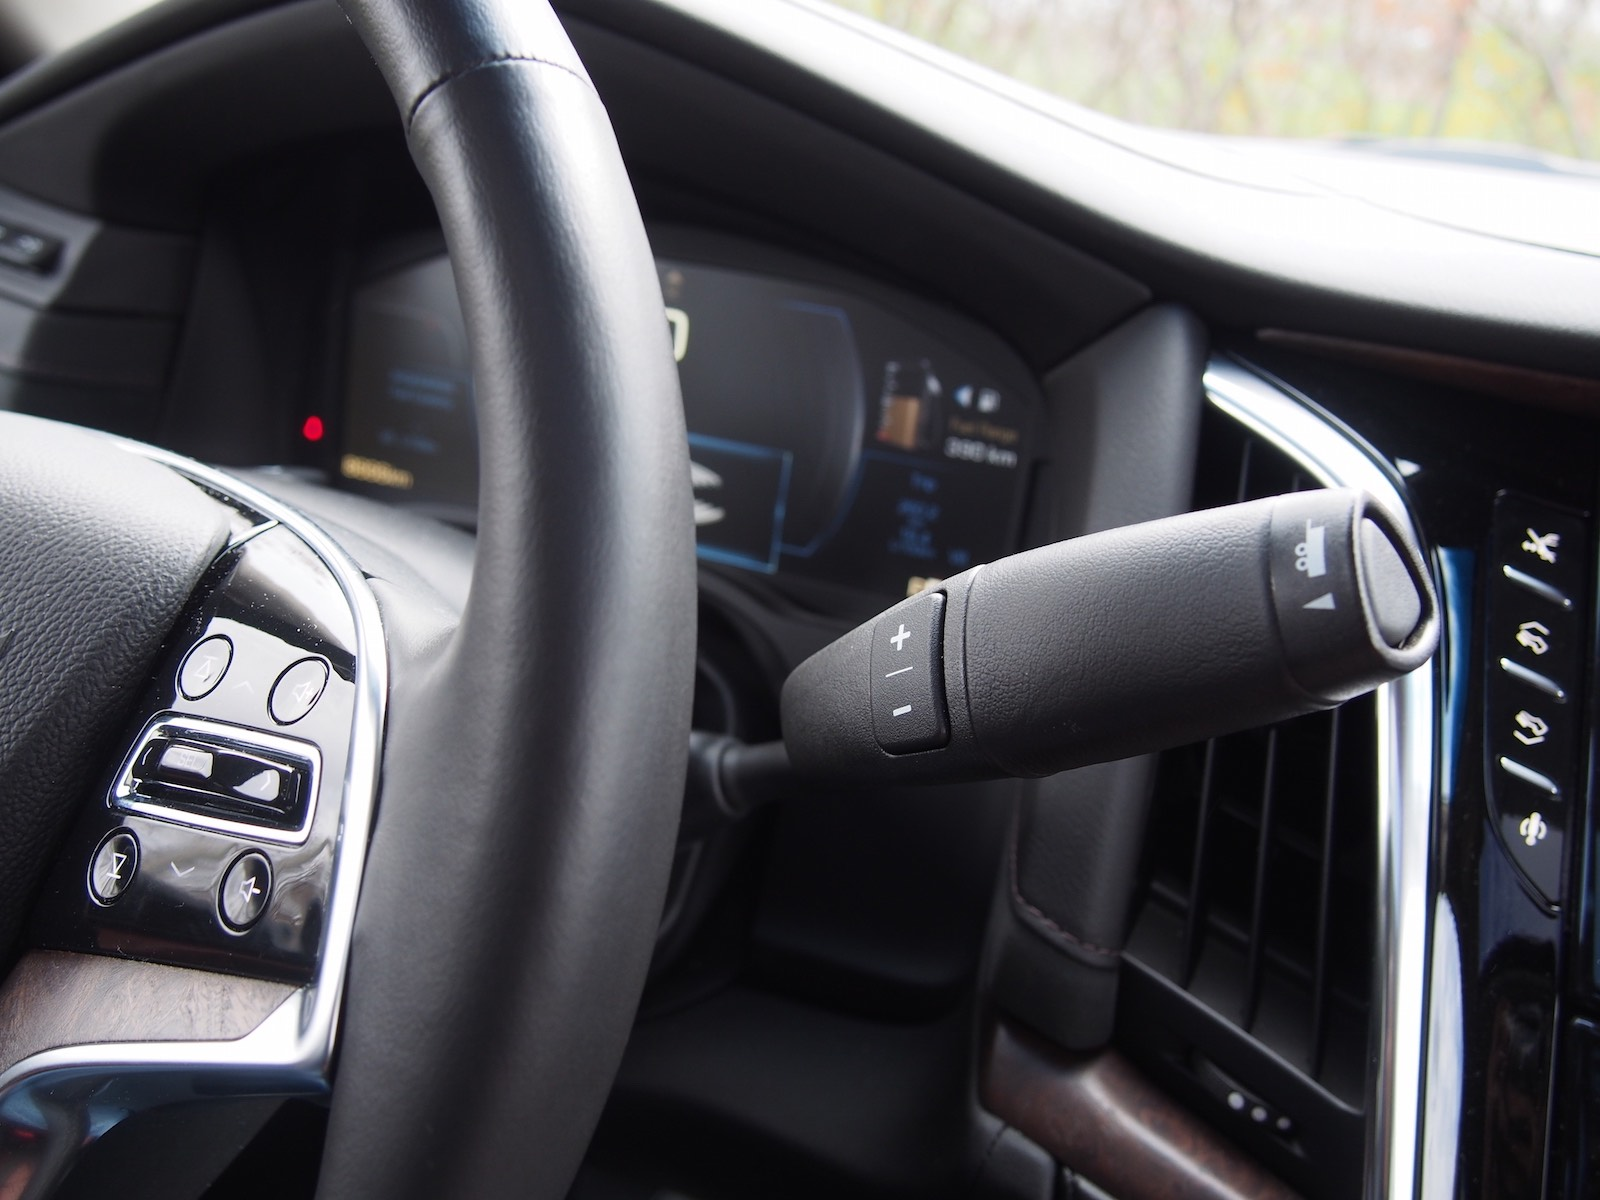 hd size truck capability when escalade luxury suv cadillac news full meets wallpapers photos